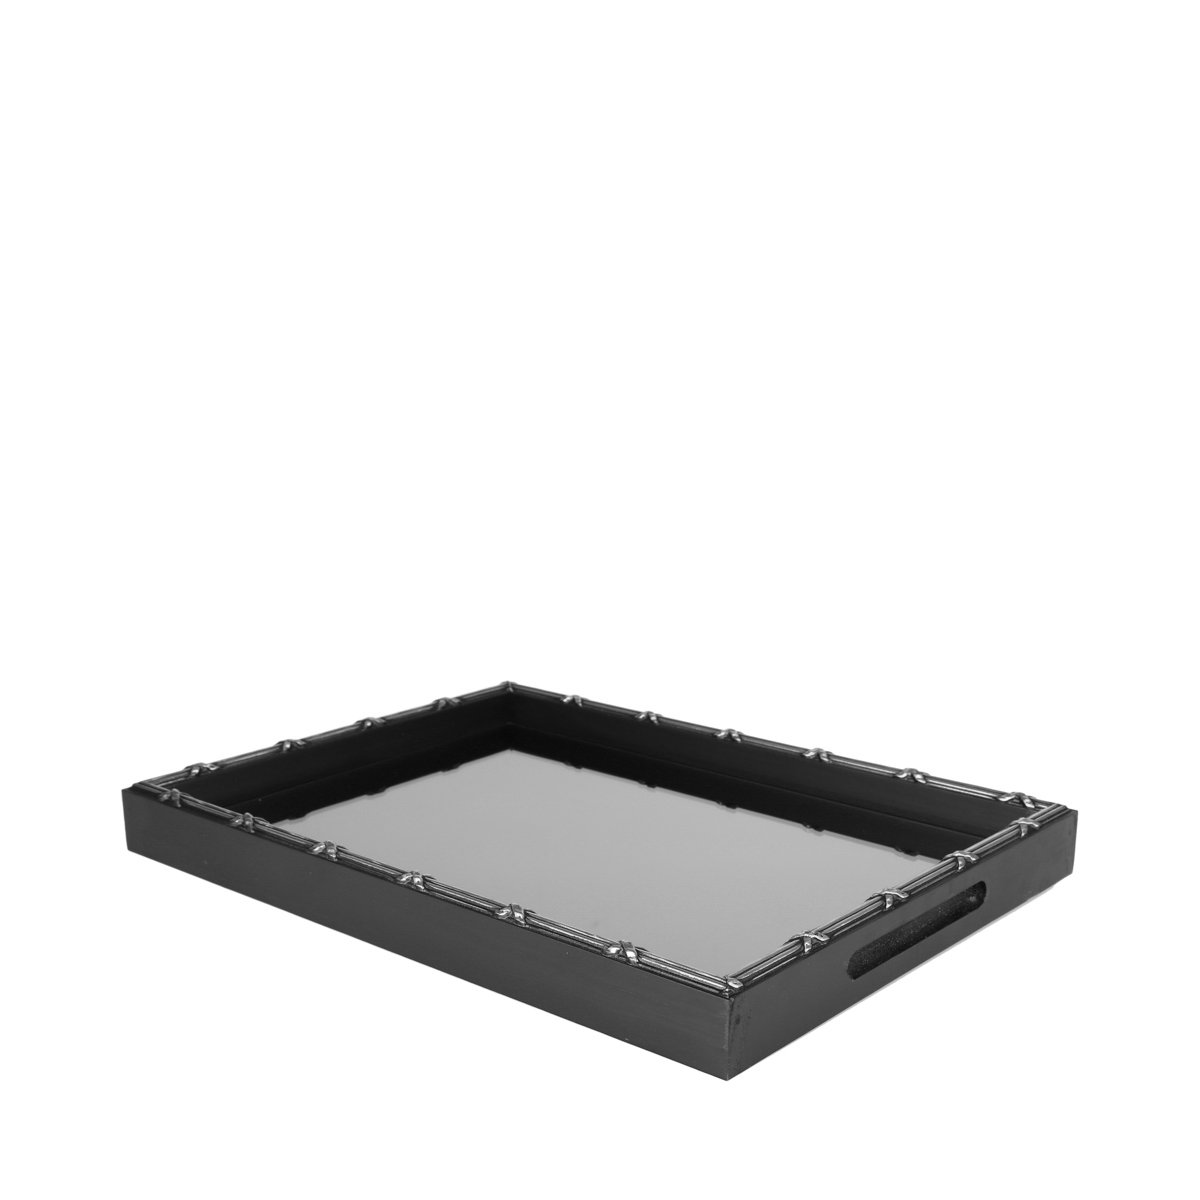 Woodart Croisé Wooden Serving Tray with Handles (Black, 15x11) by Wood Art (Image #2)